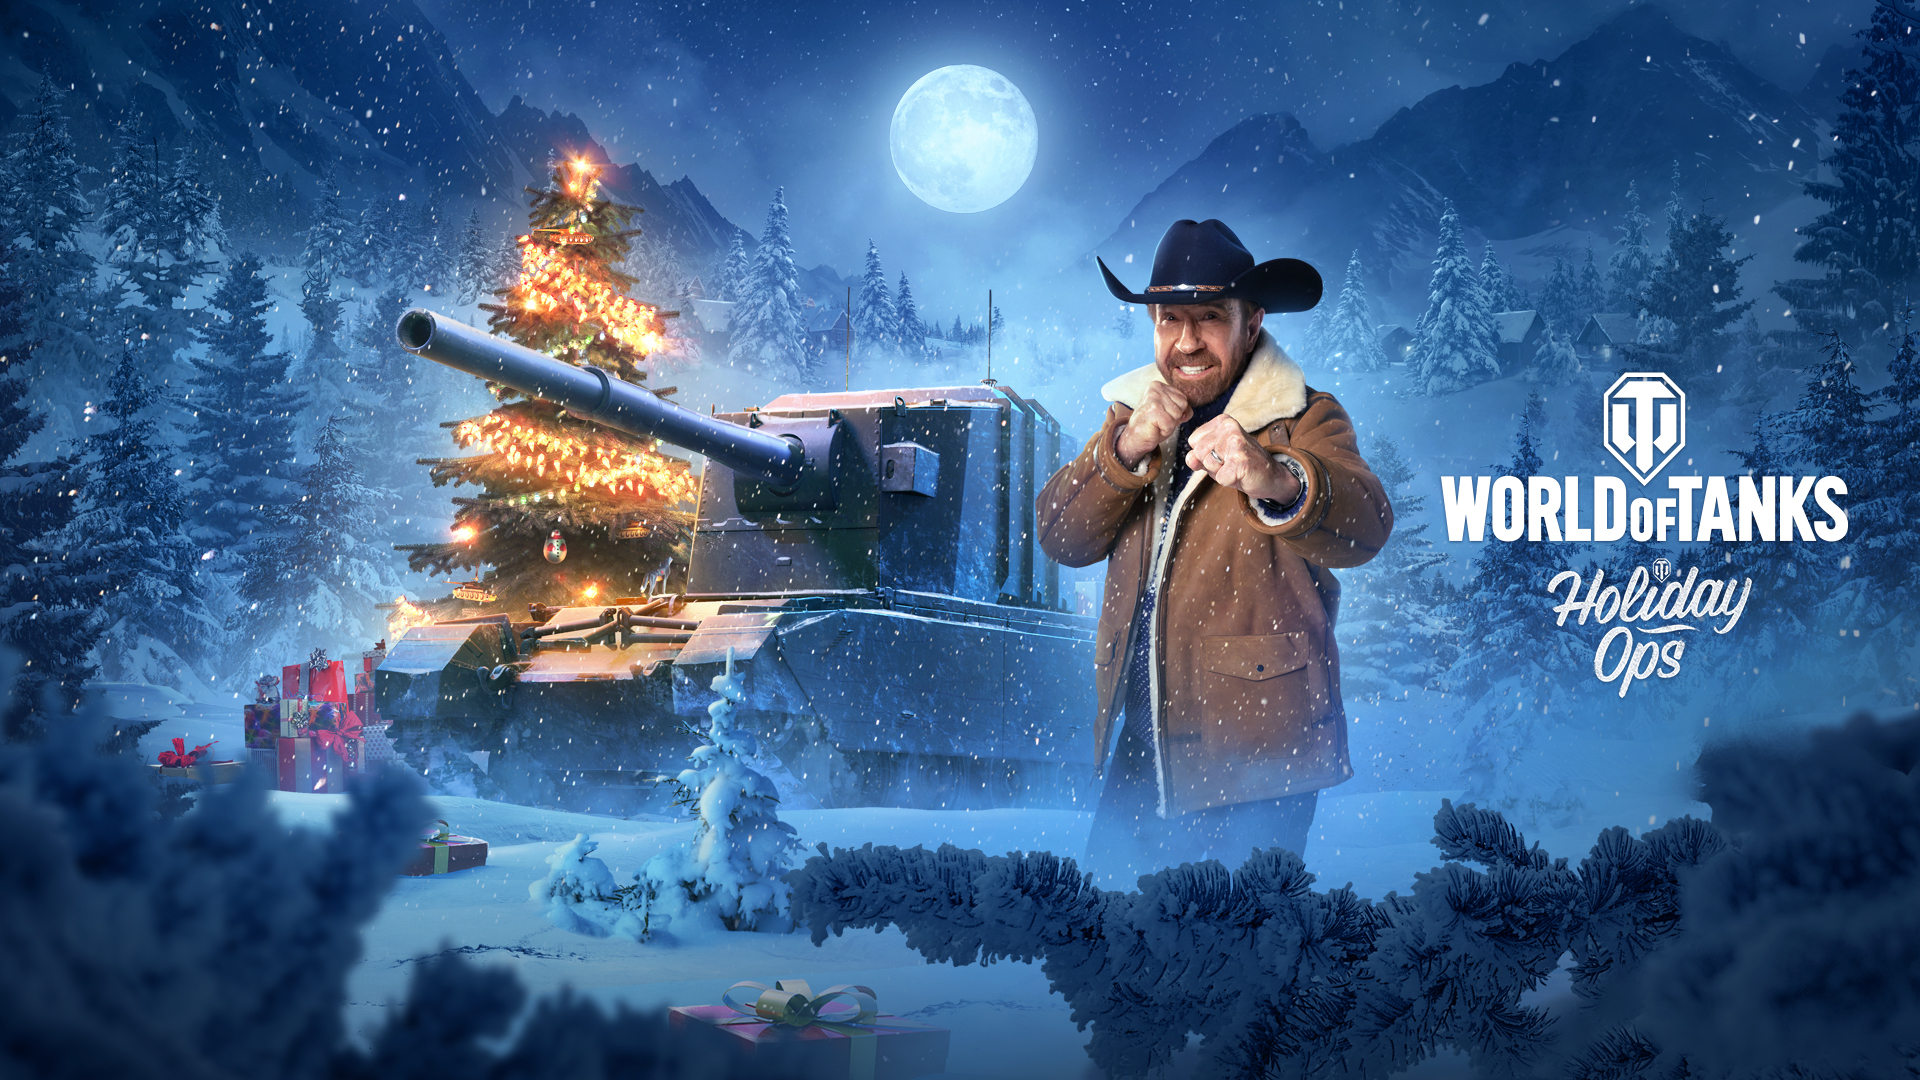 Chuck Norris Brings the Festive Cheer to World of Tanks